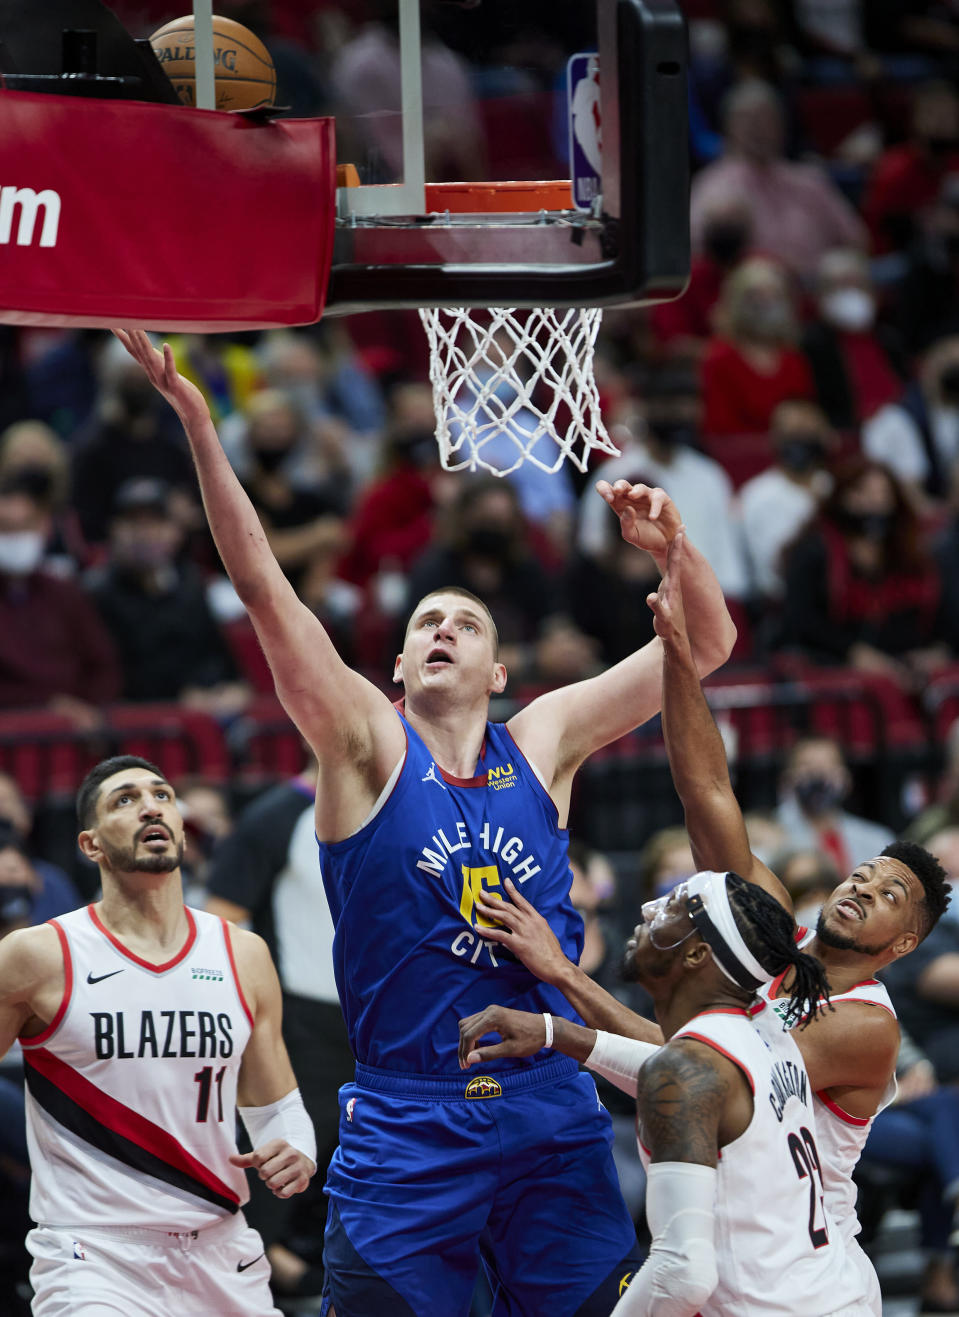 Denver Nuggets center Nikola Jokic, center, shoots over Portland Trail Blazers guard CJ McCollum, right, forward Robert Covington, second from right, and center Enes Kanter, left, during the first half of Game 3 of an NBA basketball first-round playoff series Thursday, May 27, 2021, in Portland, Ore. (AP Photo/Craig Mitchelldyer)